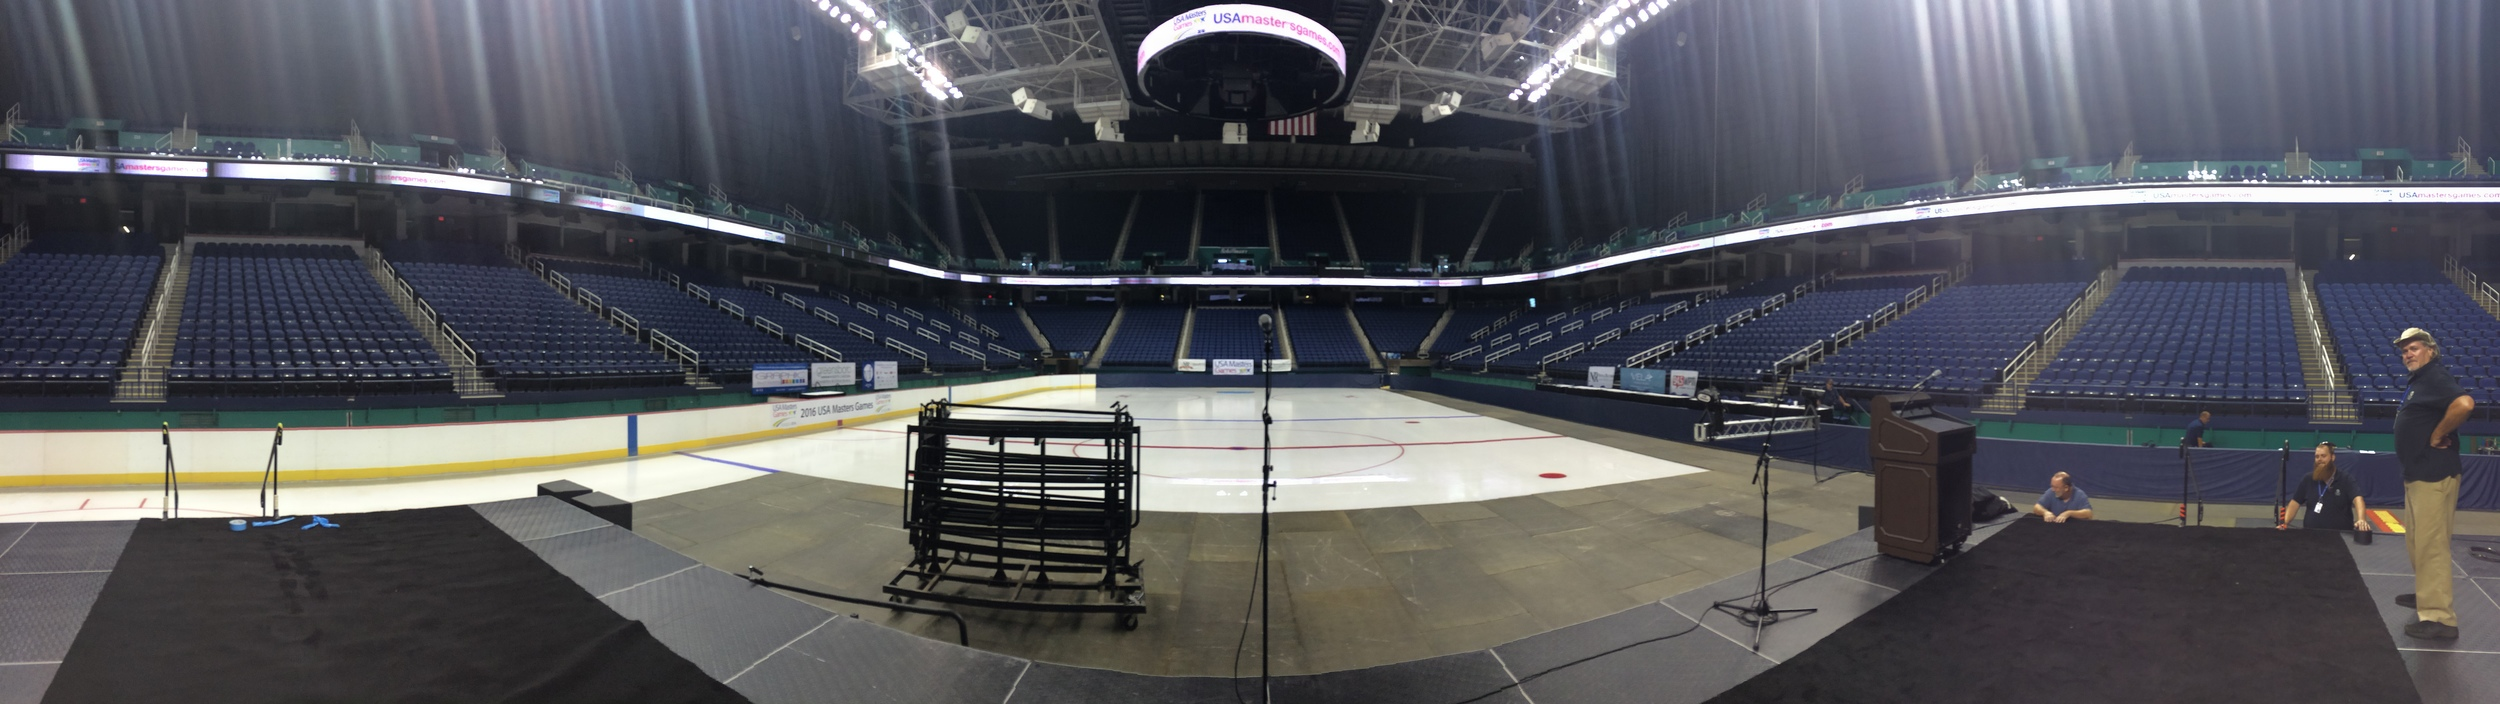 Our first arena! Greensboro Colesium! For the opening ceremony of the USA Masters Games in NC!